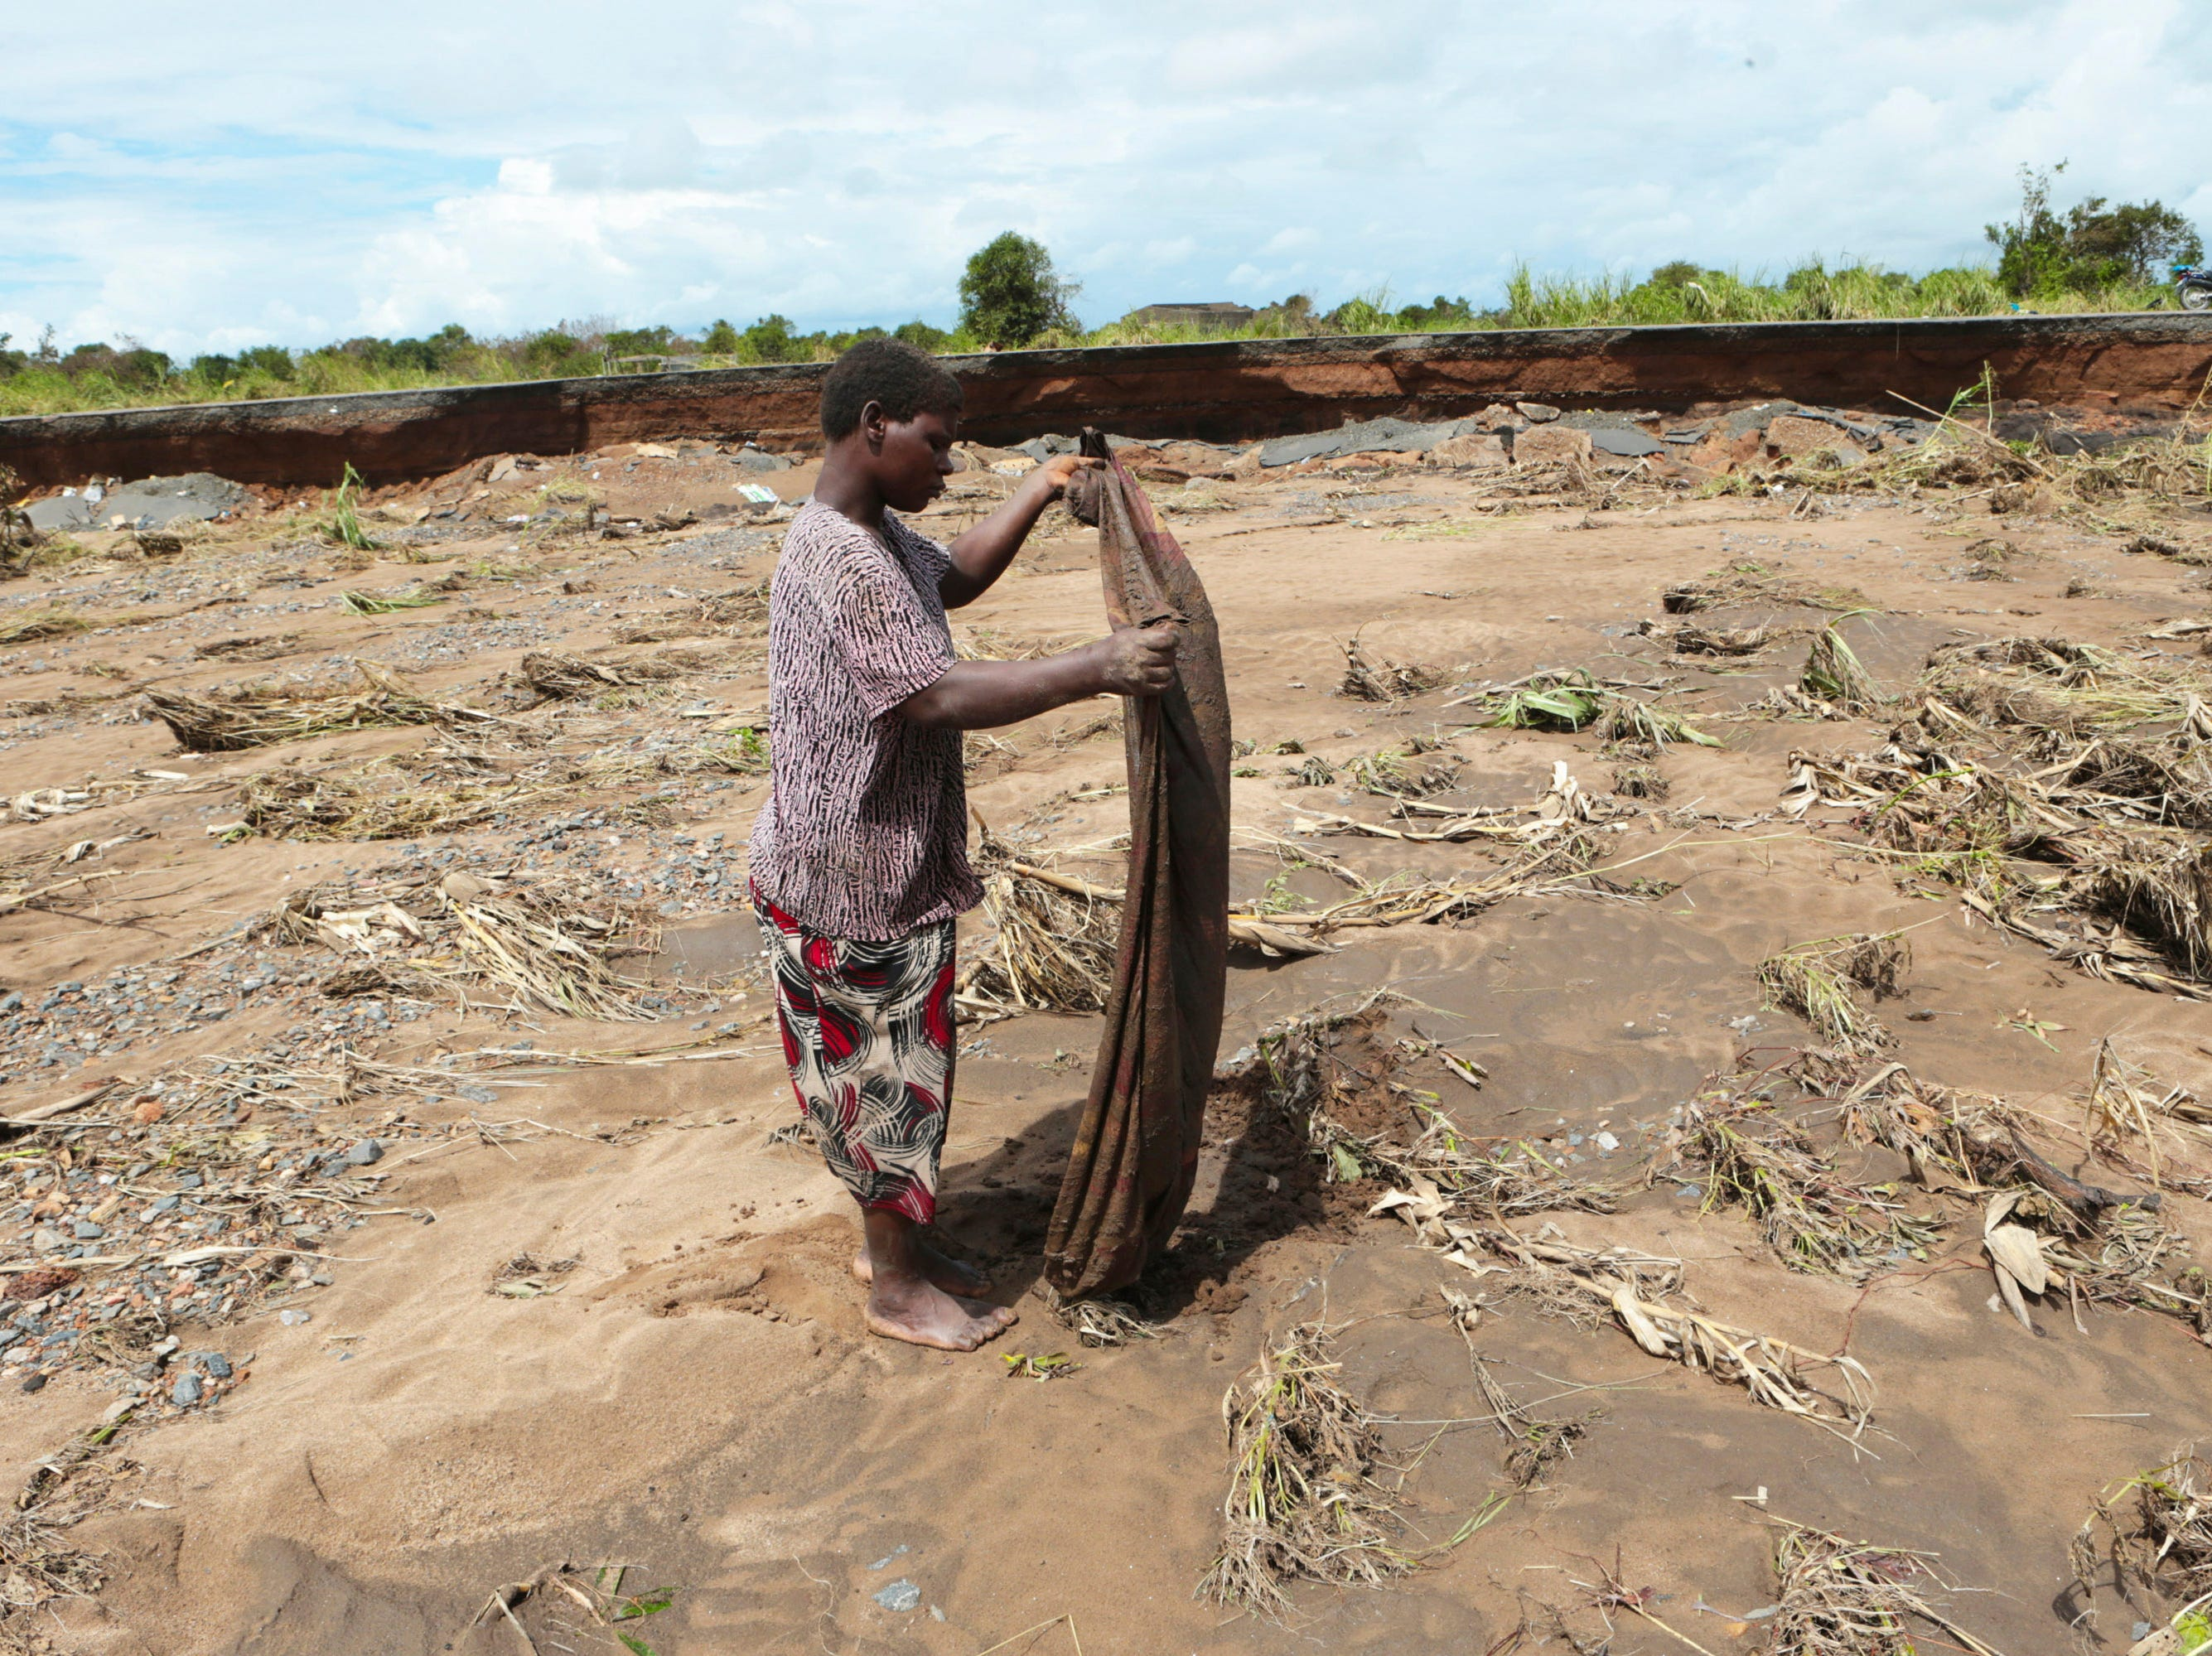 A villager salvages what remains of a piece of clothing near a section of the road damaged by Cyclone Idai in Nhamatanda about 50 kilometers from Beira, in Mozambique, Friday March, 22, 2019. As flood waters began to recede in parts of Mozambique on Friday, fears rose that the death toll could soar as bodies are revealed.